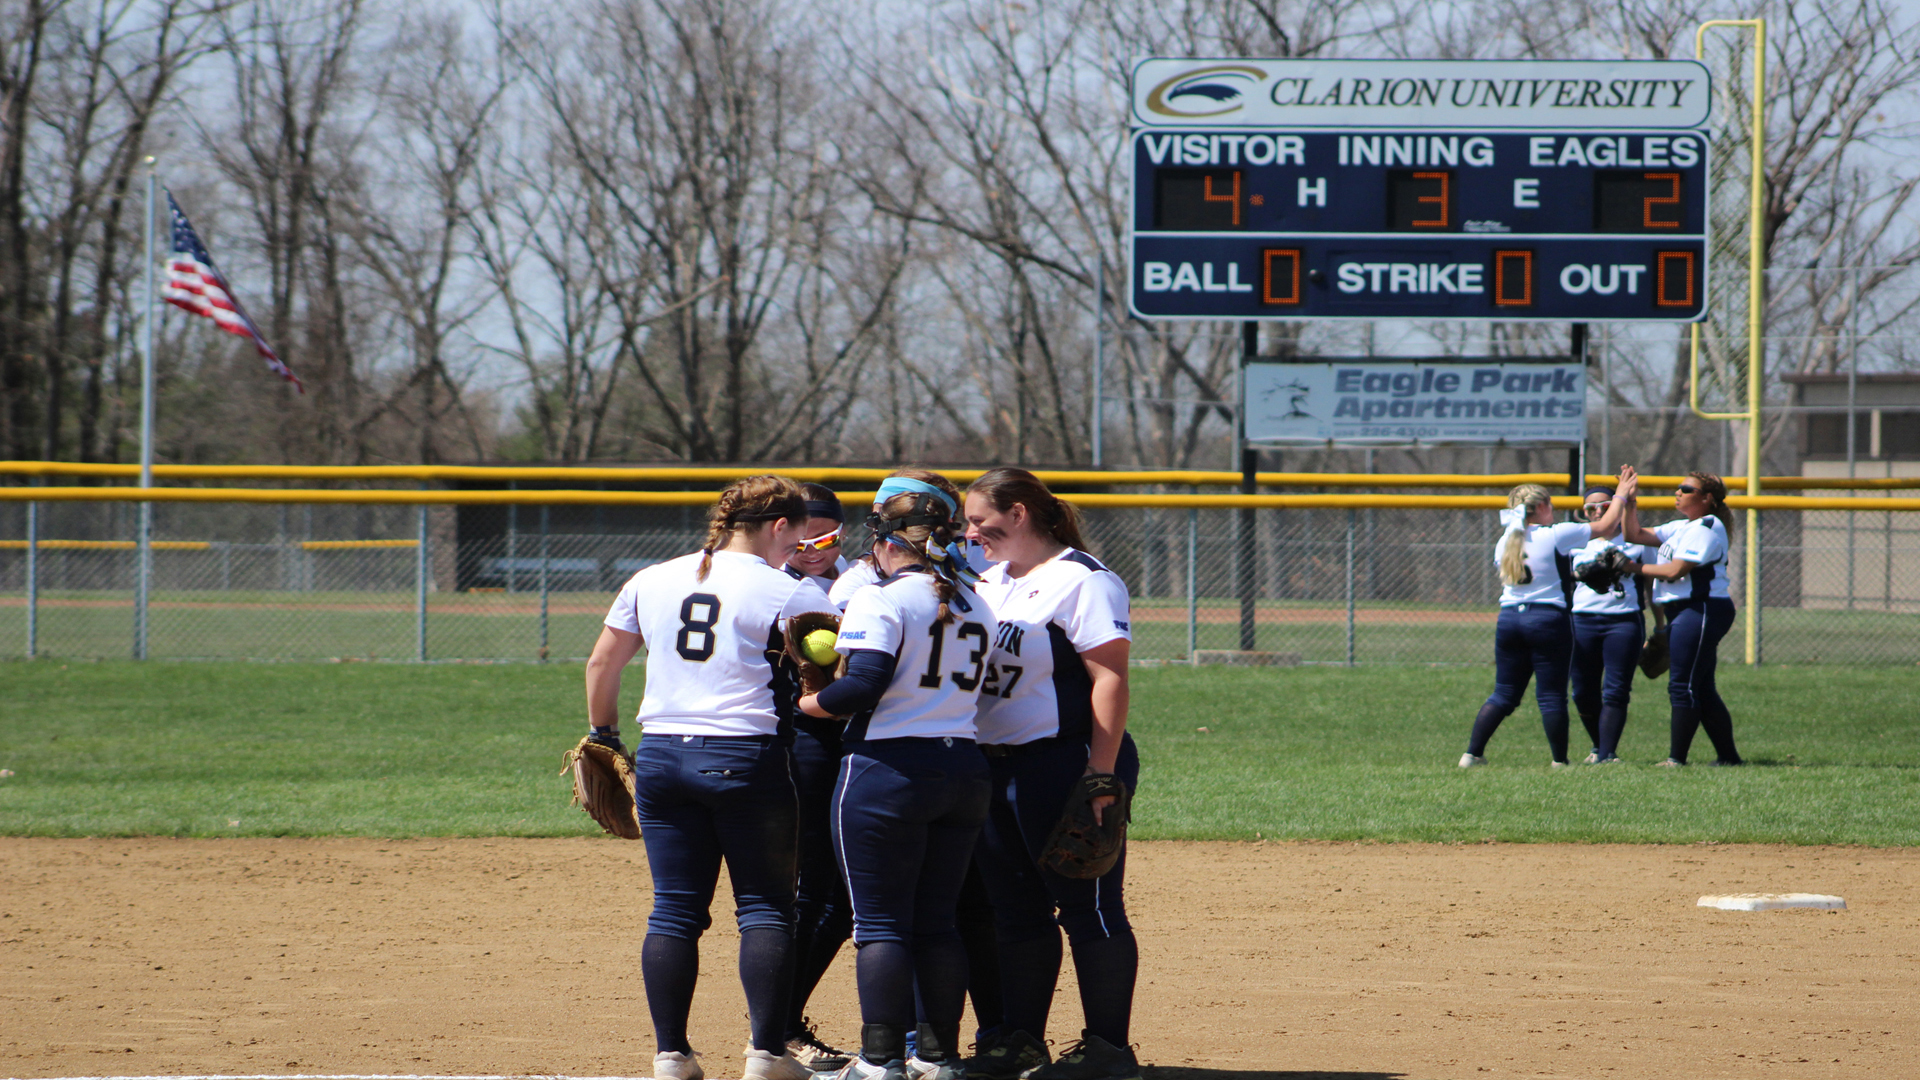 College Roundup: Clarion U. Softball Splits DH with UPJ